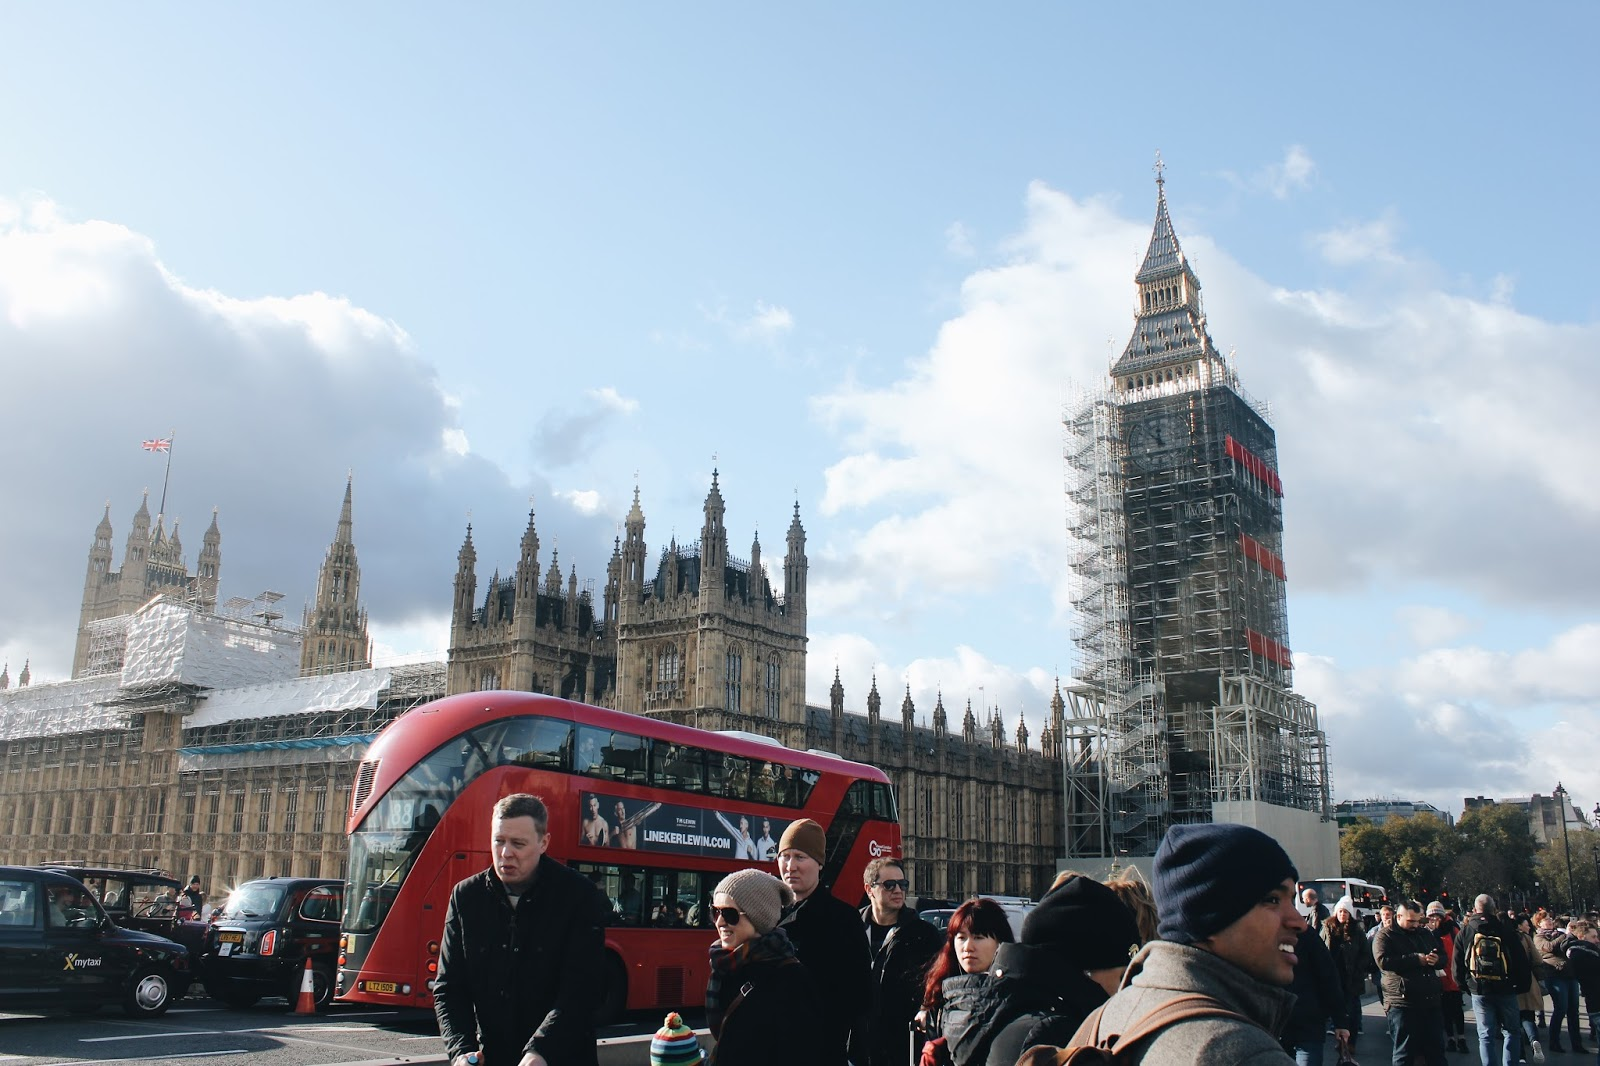 London, England: 3-Day Travel Guide (For Couples or Solo Explorers!)